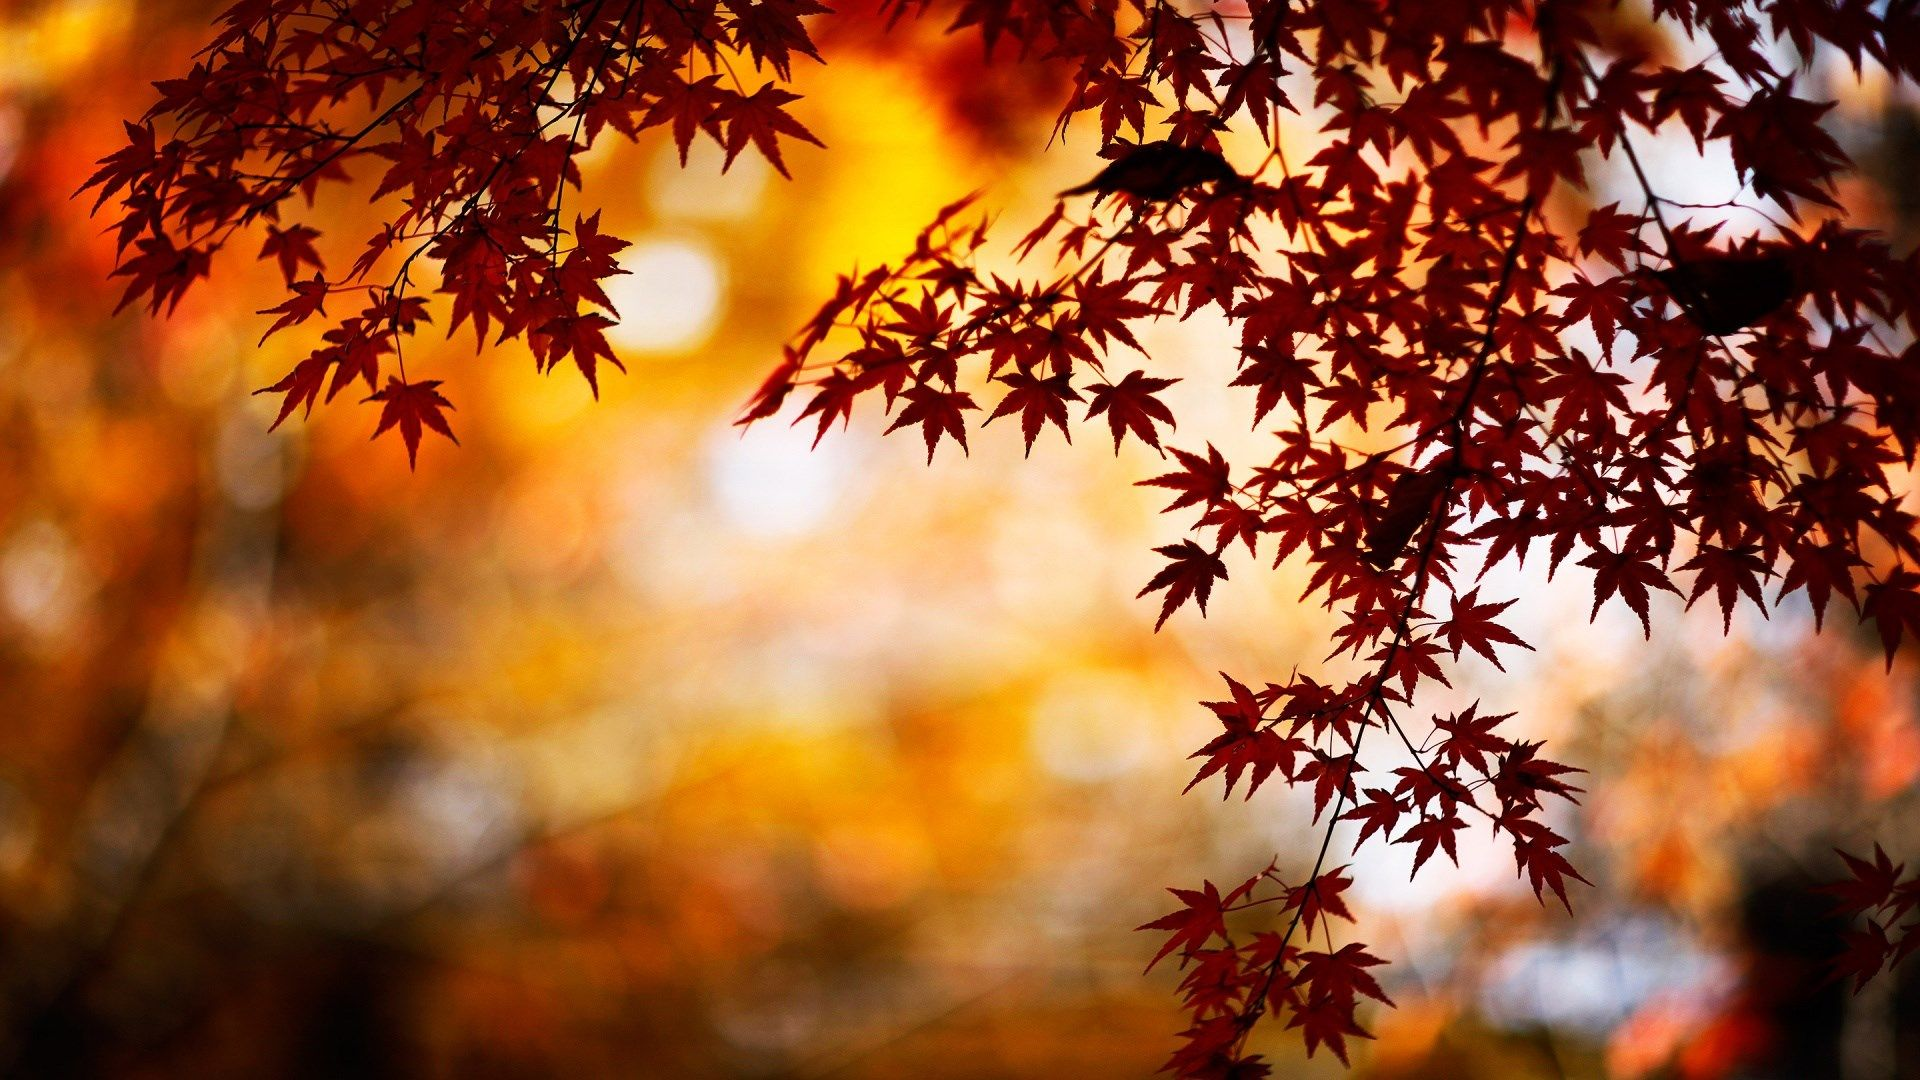 Fall Desktop Backgrounds Images Desgins Osennie Kartinki Fonovye Izobrazheniya Osennie Fotografii